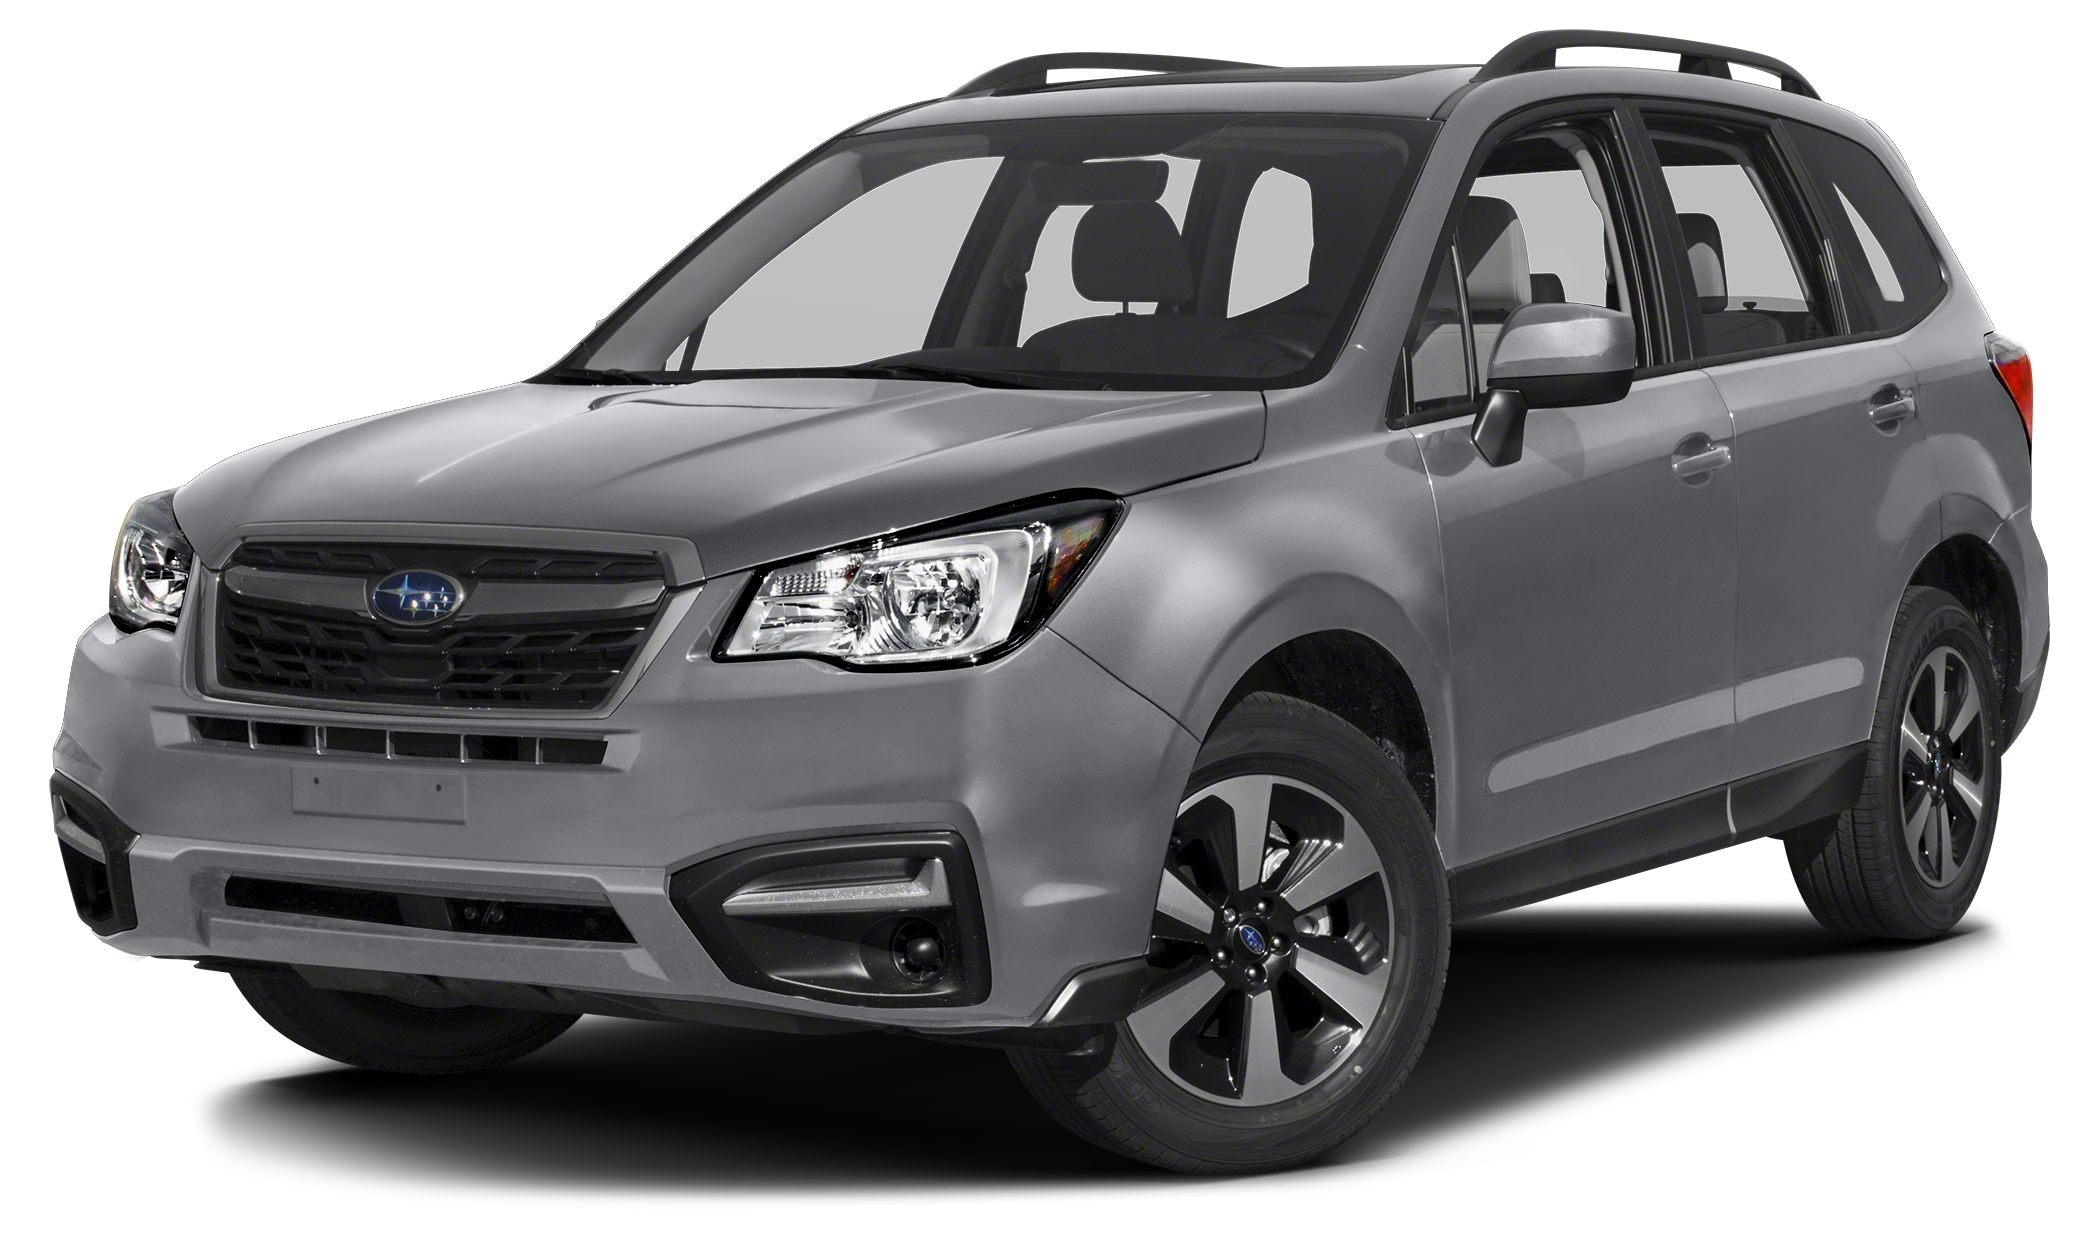 2017 Subaru Forester 25i Premium Thank you for visiting another one of Conley Subarus exclusive